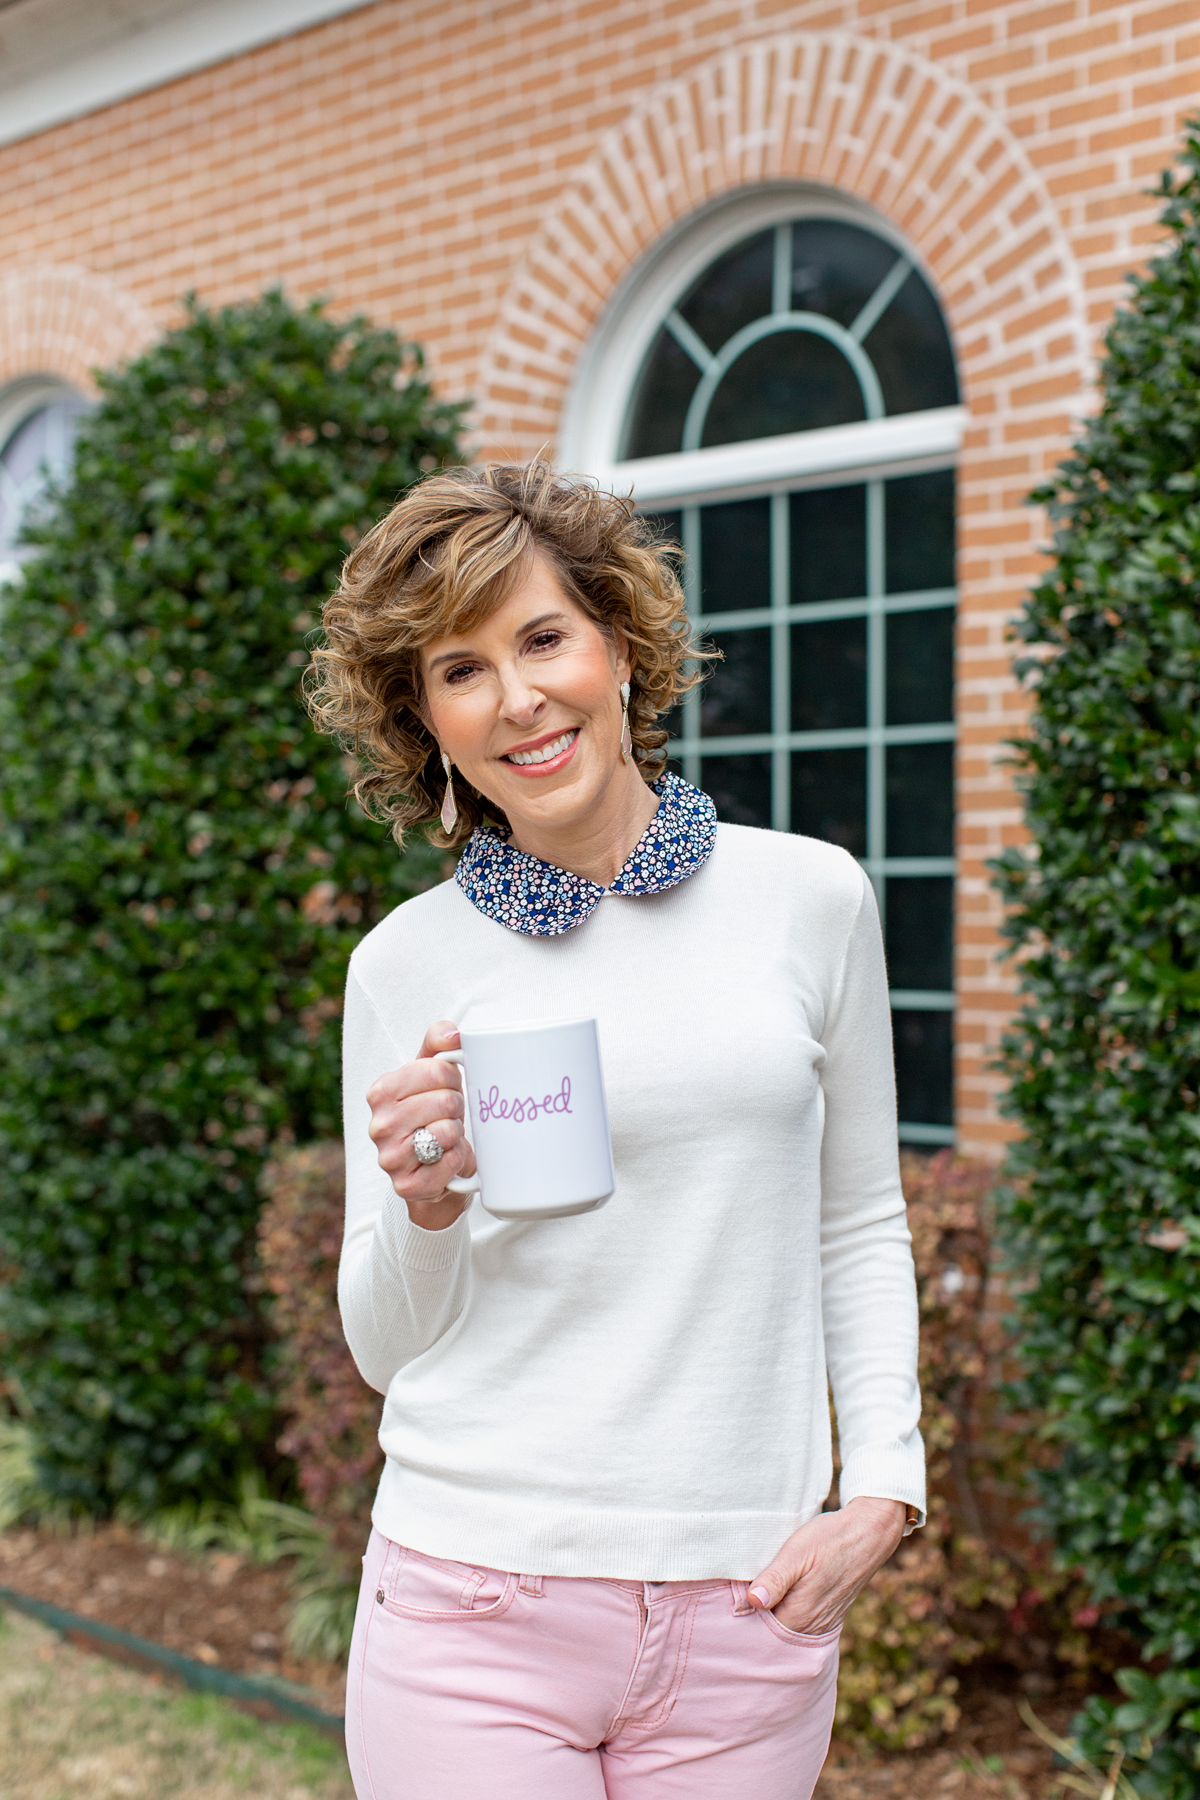 woman wearing white sweater with blue collar holding a coffee cup